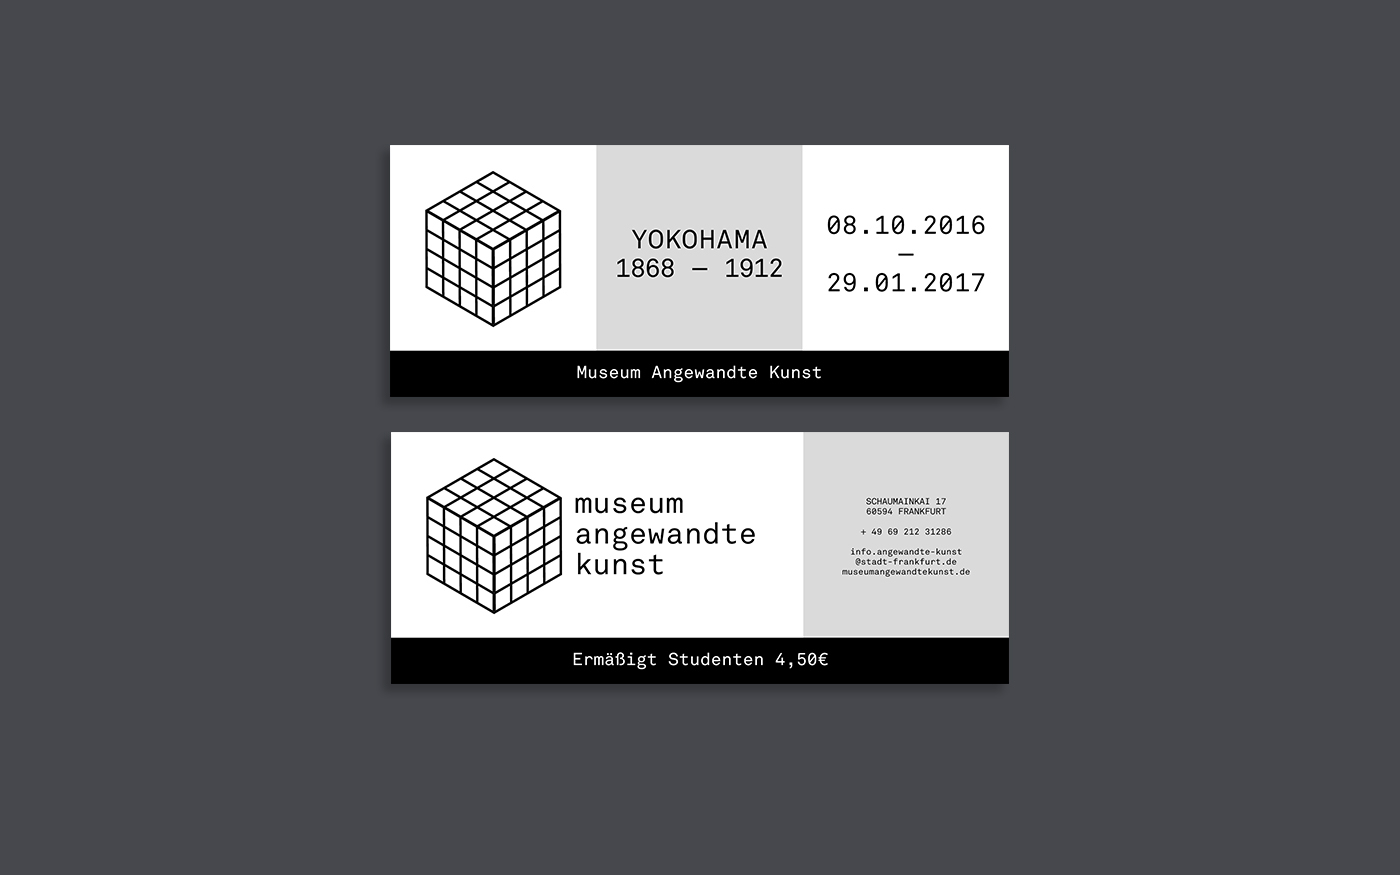 Mak Frankfurt Museum Angewandte Kunst Frankfurt Redesign On Behance